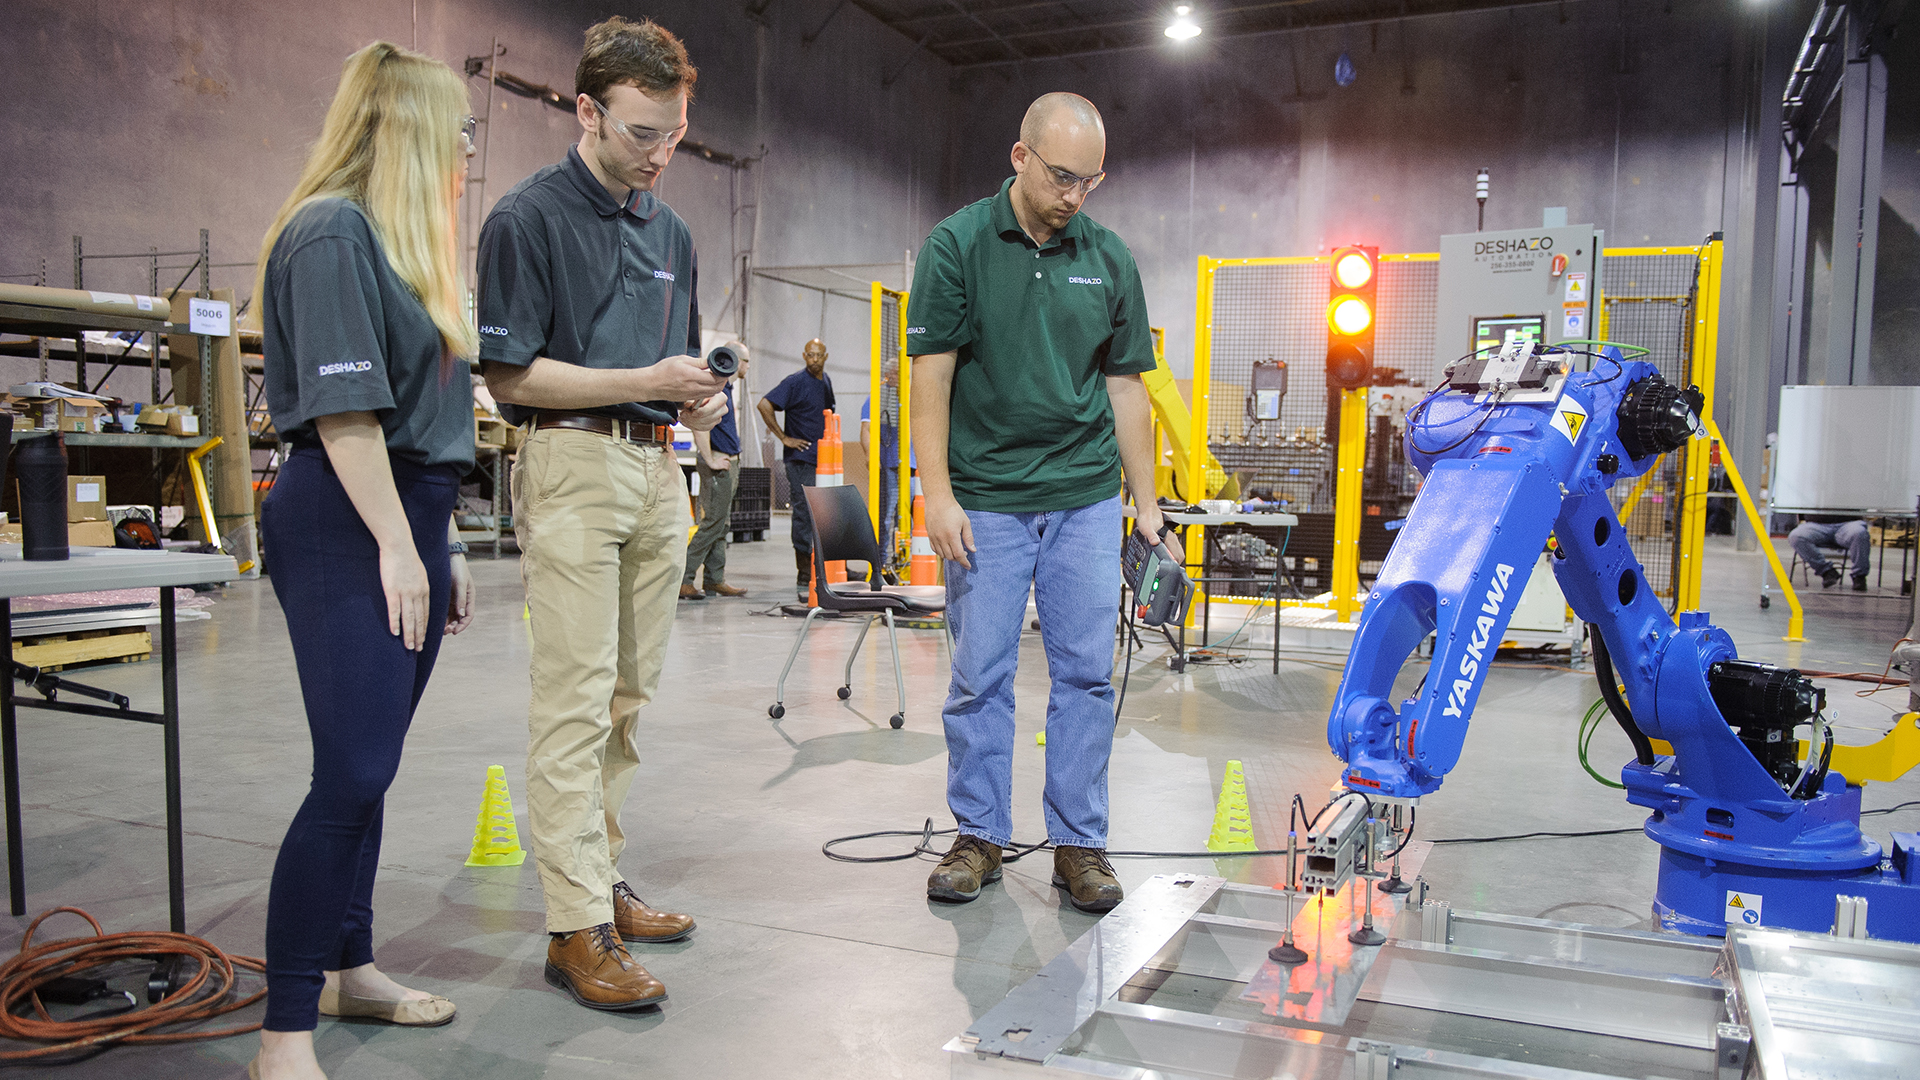 Two students and a professor watch a robot work.